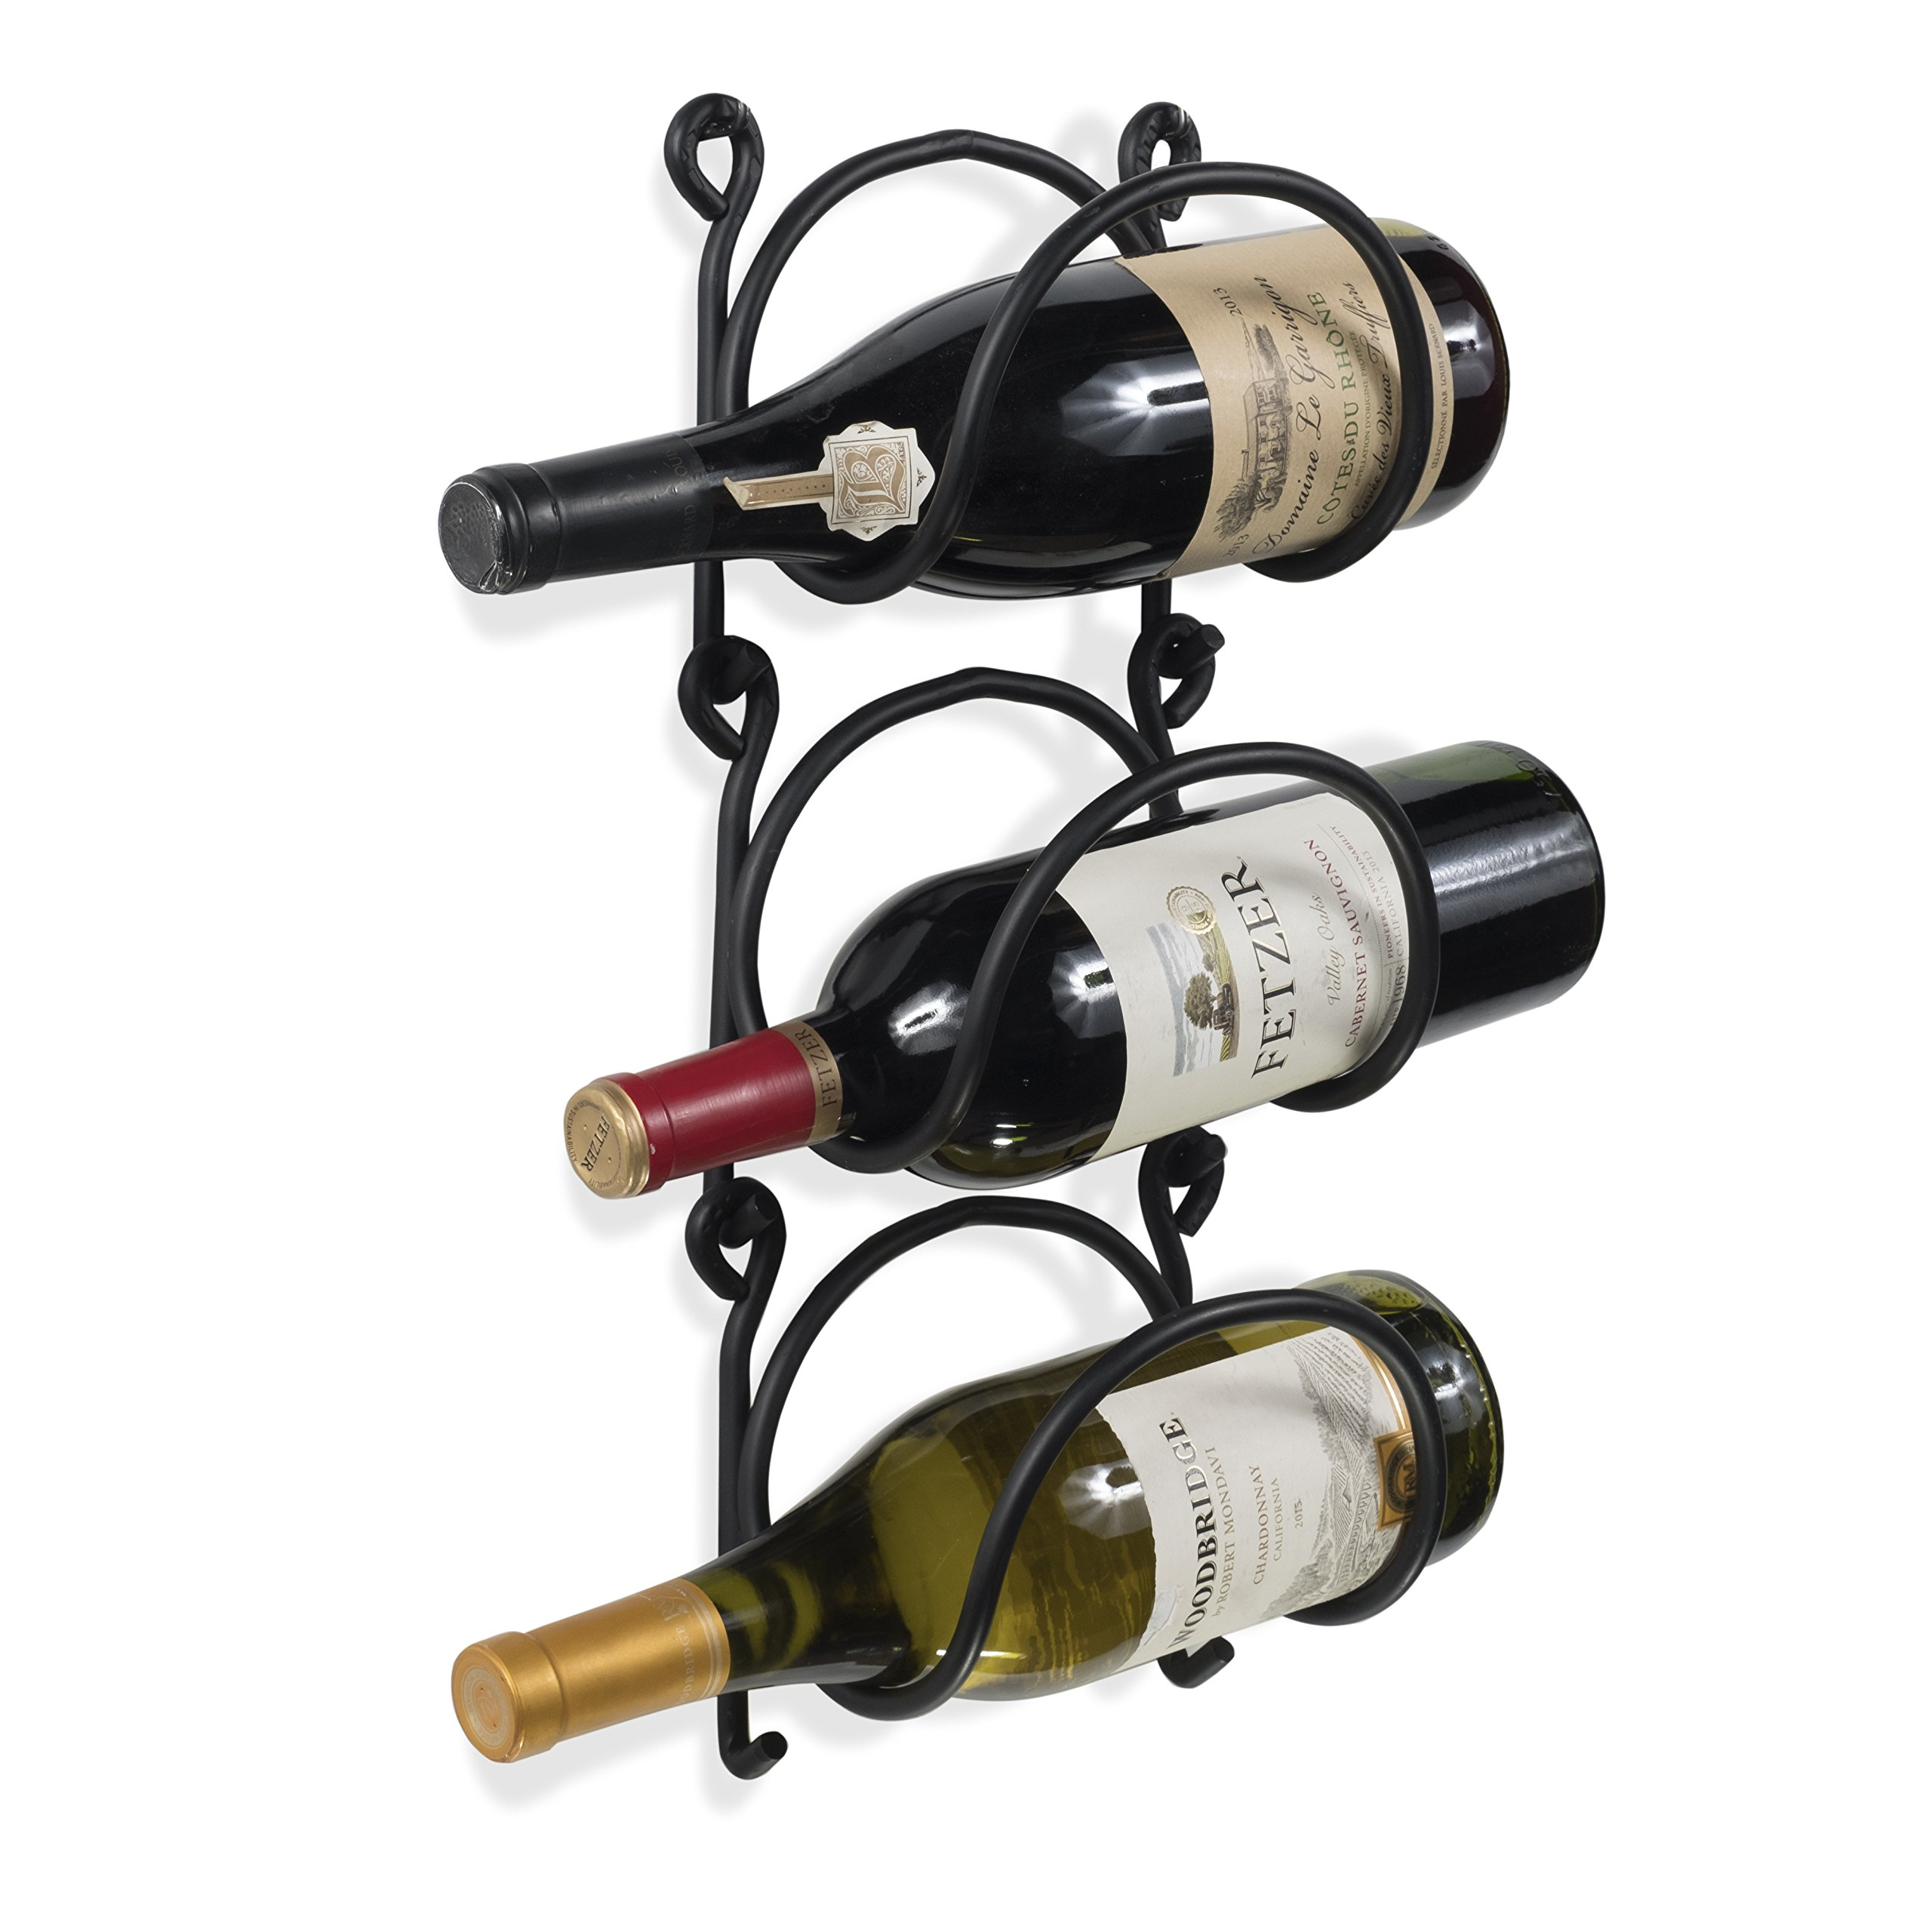 Wallniture Wrought Iron Wine Rack – Wall Mount Bottle Storage Organizer – Rustic Home Decor Set of 3 by Wallniture